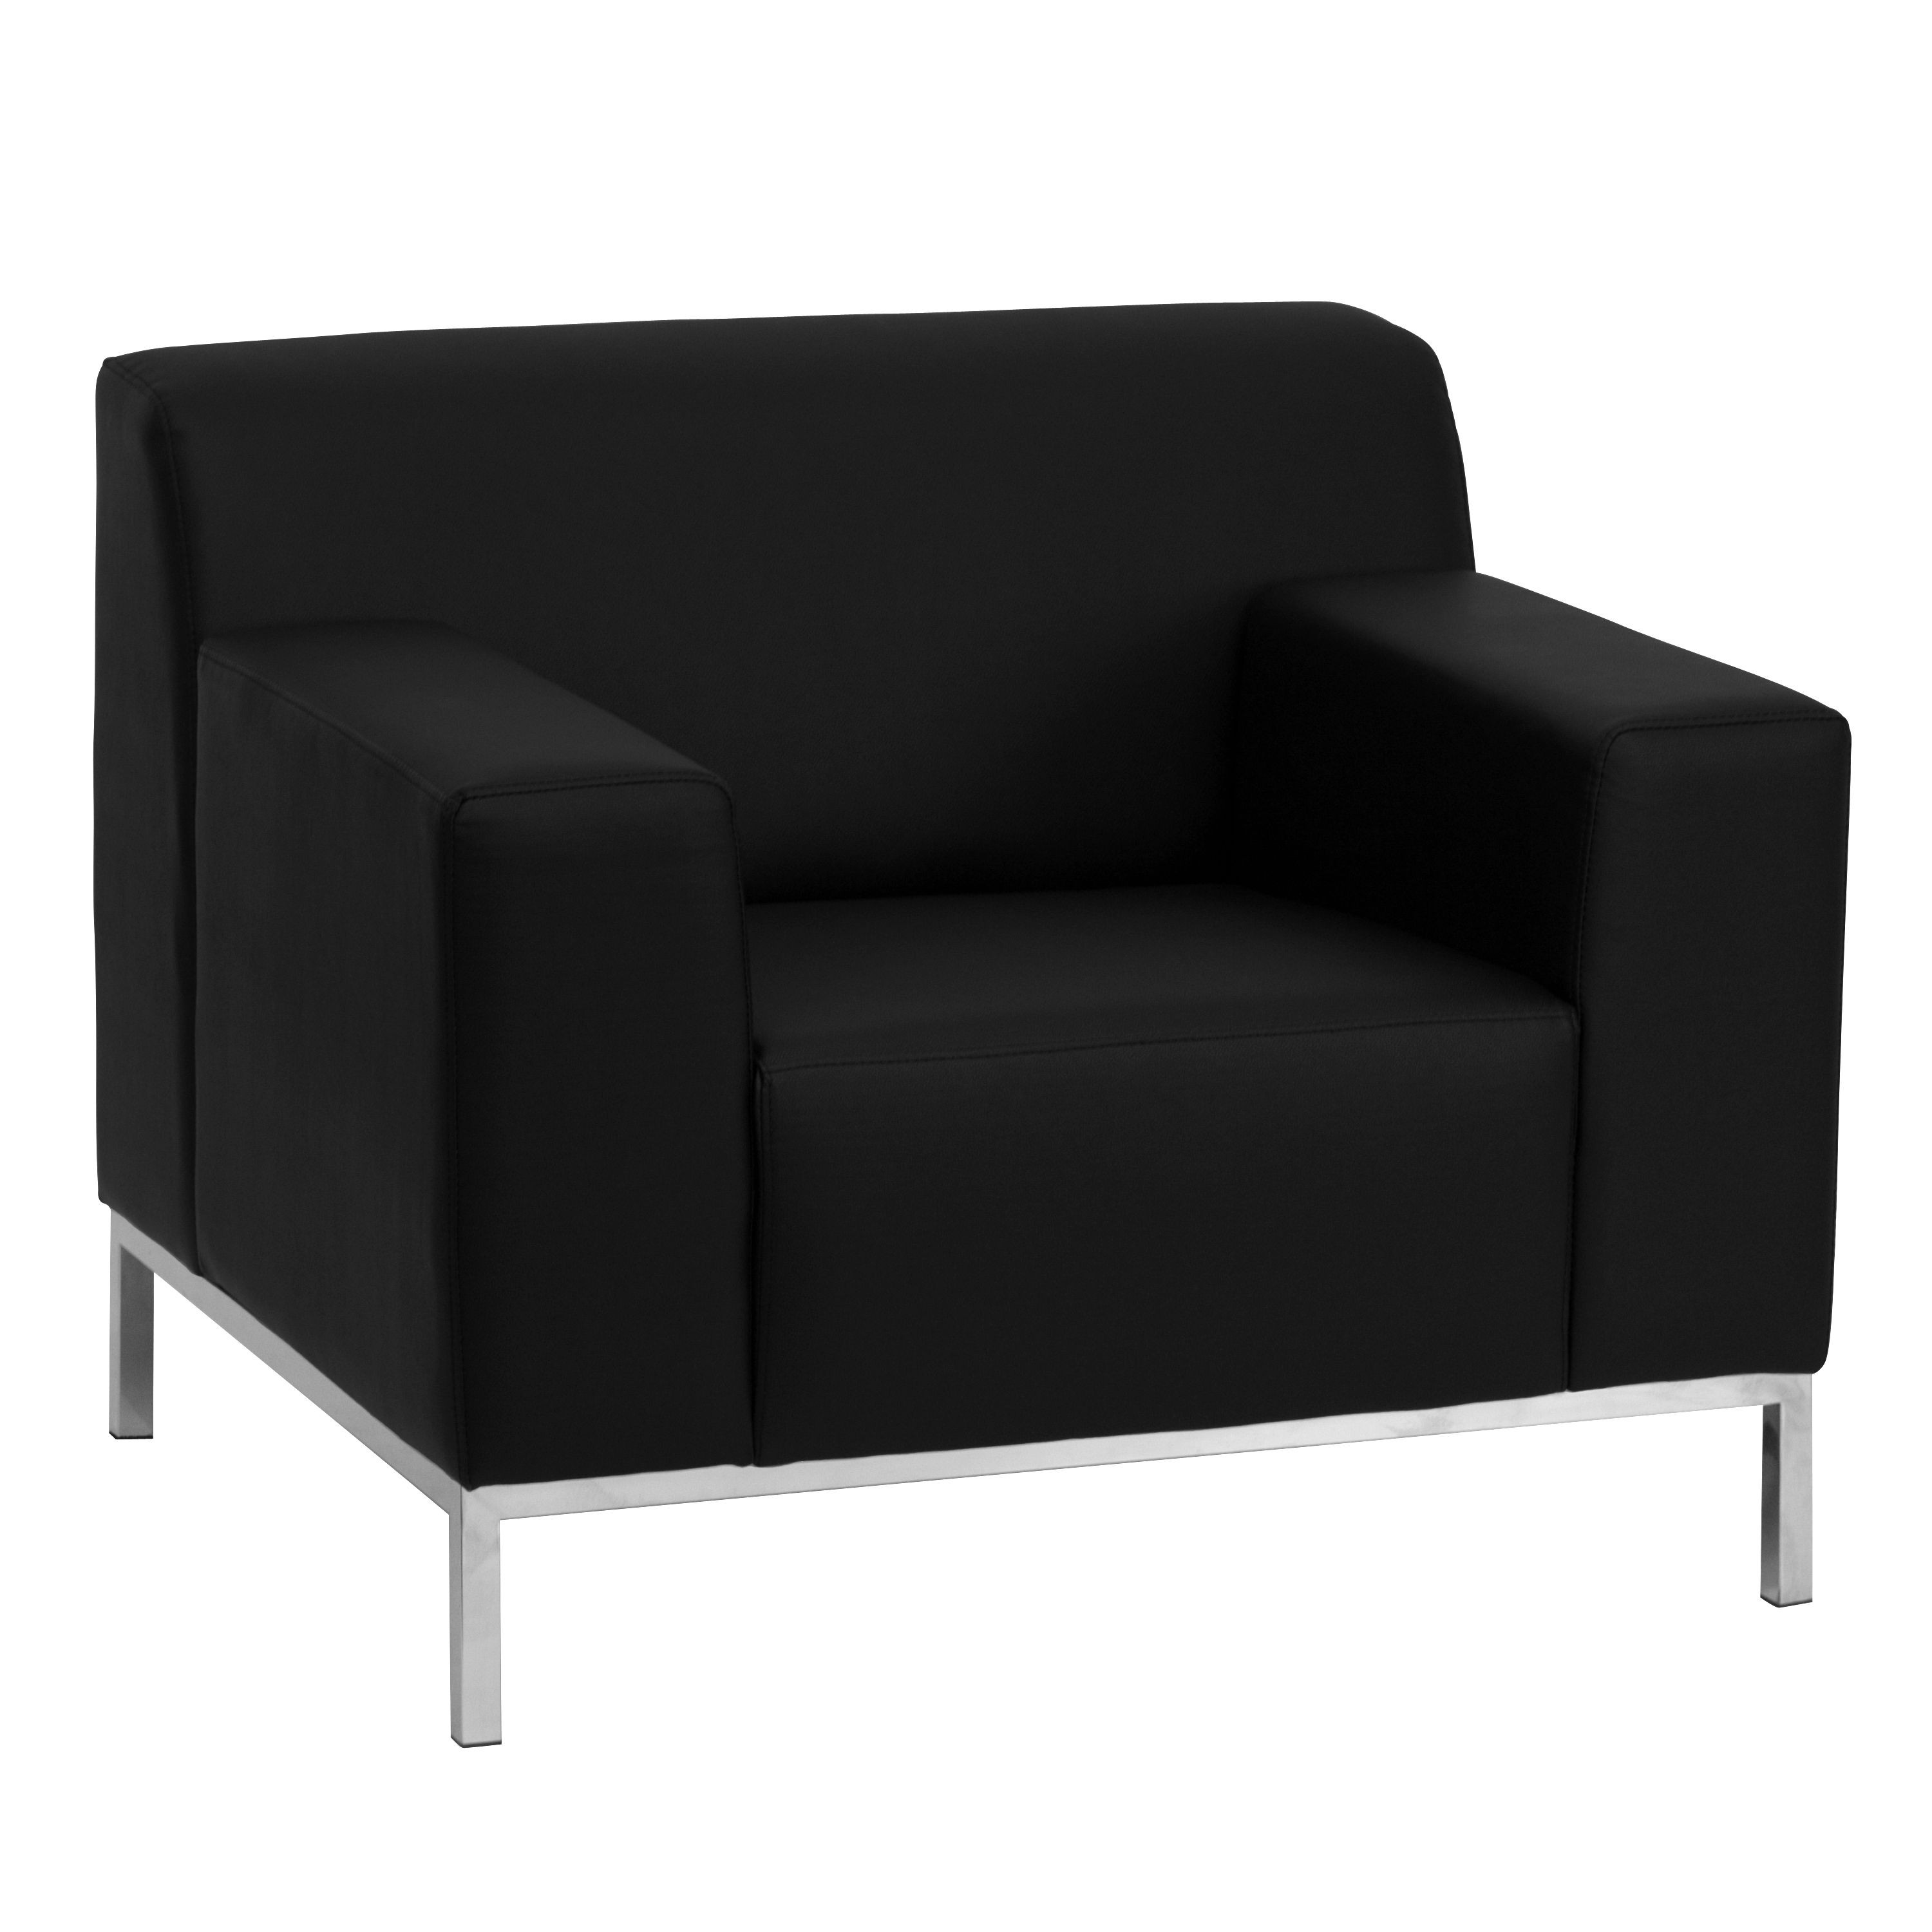 Flash Furniture ZB-DEFINITY-8009-CHAIR-BK-GG Definity Series Contemporary Black Leather Chair with Stainless Steel Frame